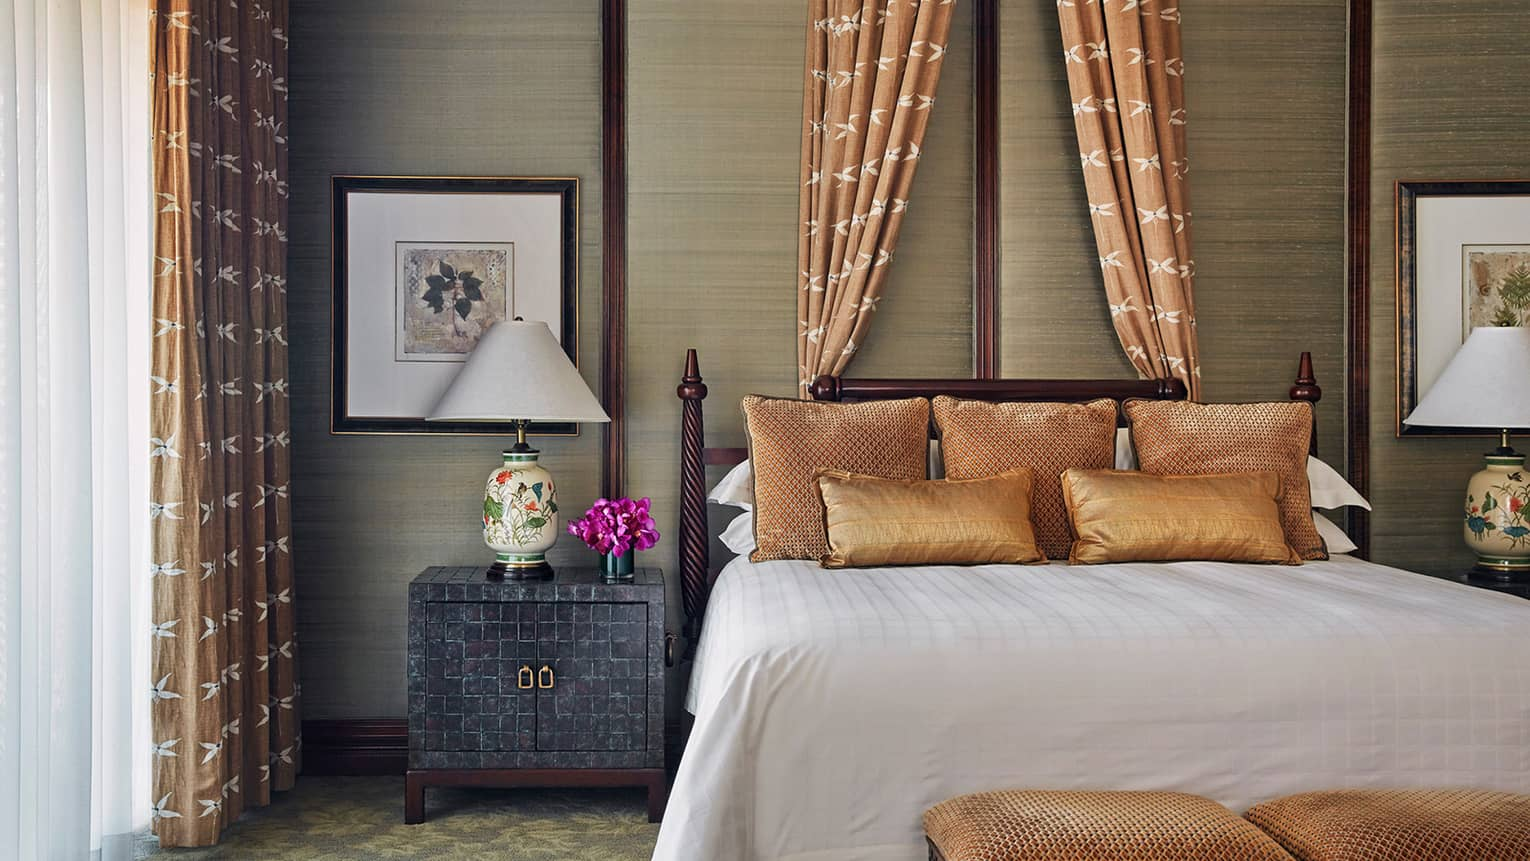 Byron Nelson Suite bed with silk copper pillows, canopy, curtains over sunny window